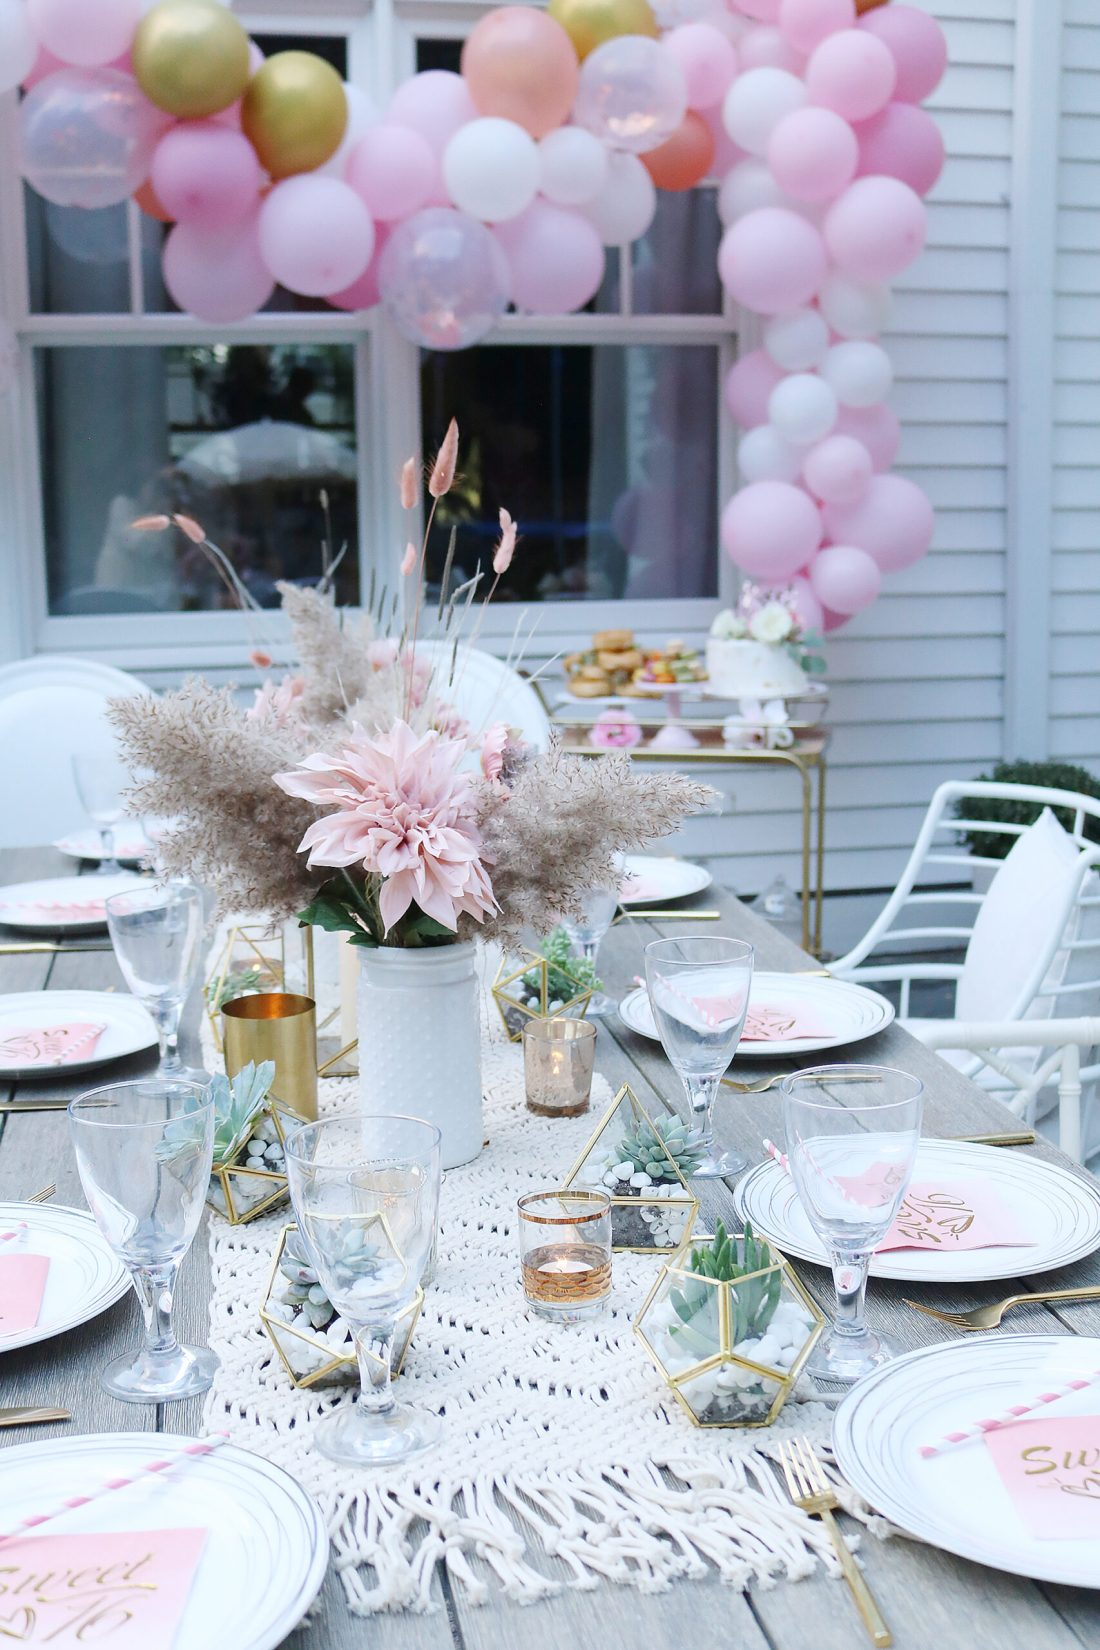 Boho Chic Sixteenth Birthday Party Celebration with all the details and party plans.  We did a sixteenth birthday photoshoot.  Perfect for any teenager turning 16! || Darling Darleen Top CT Lifestyle Blogger #sixteenthbirthday #sixteenthbirthdayparty